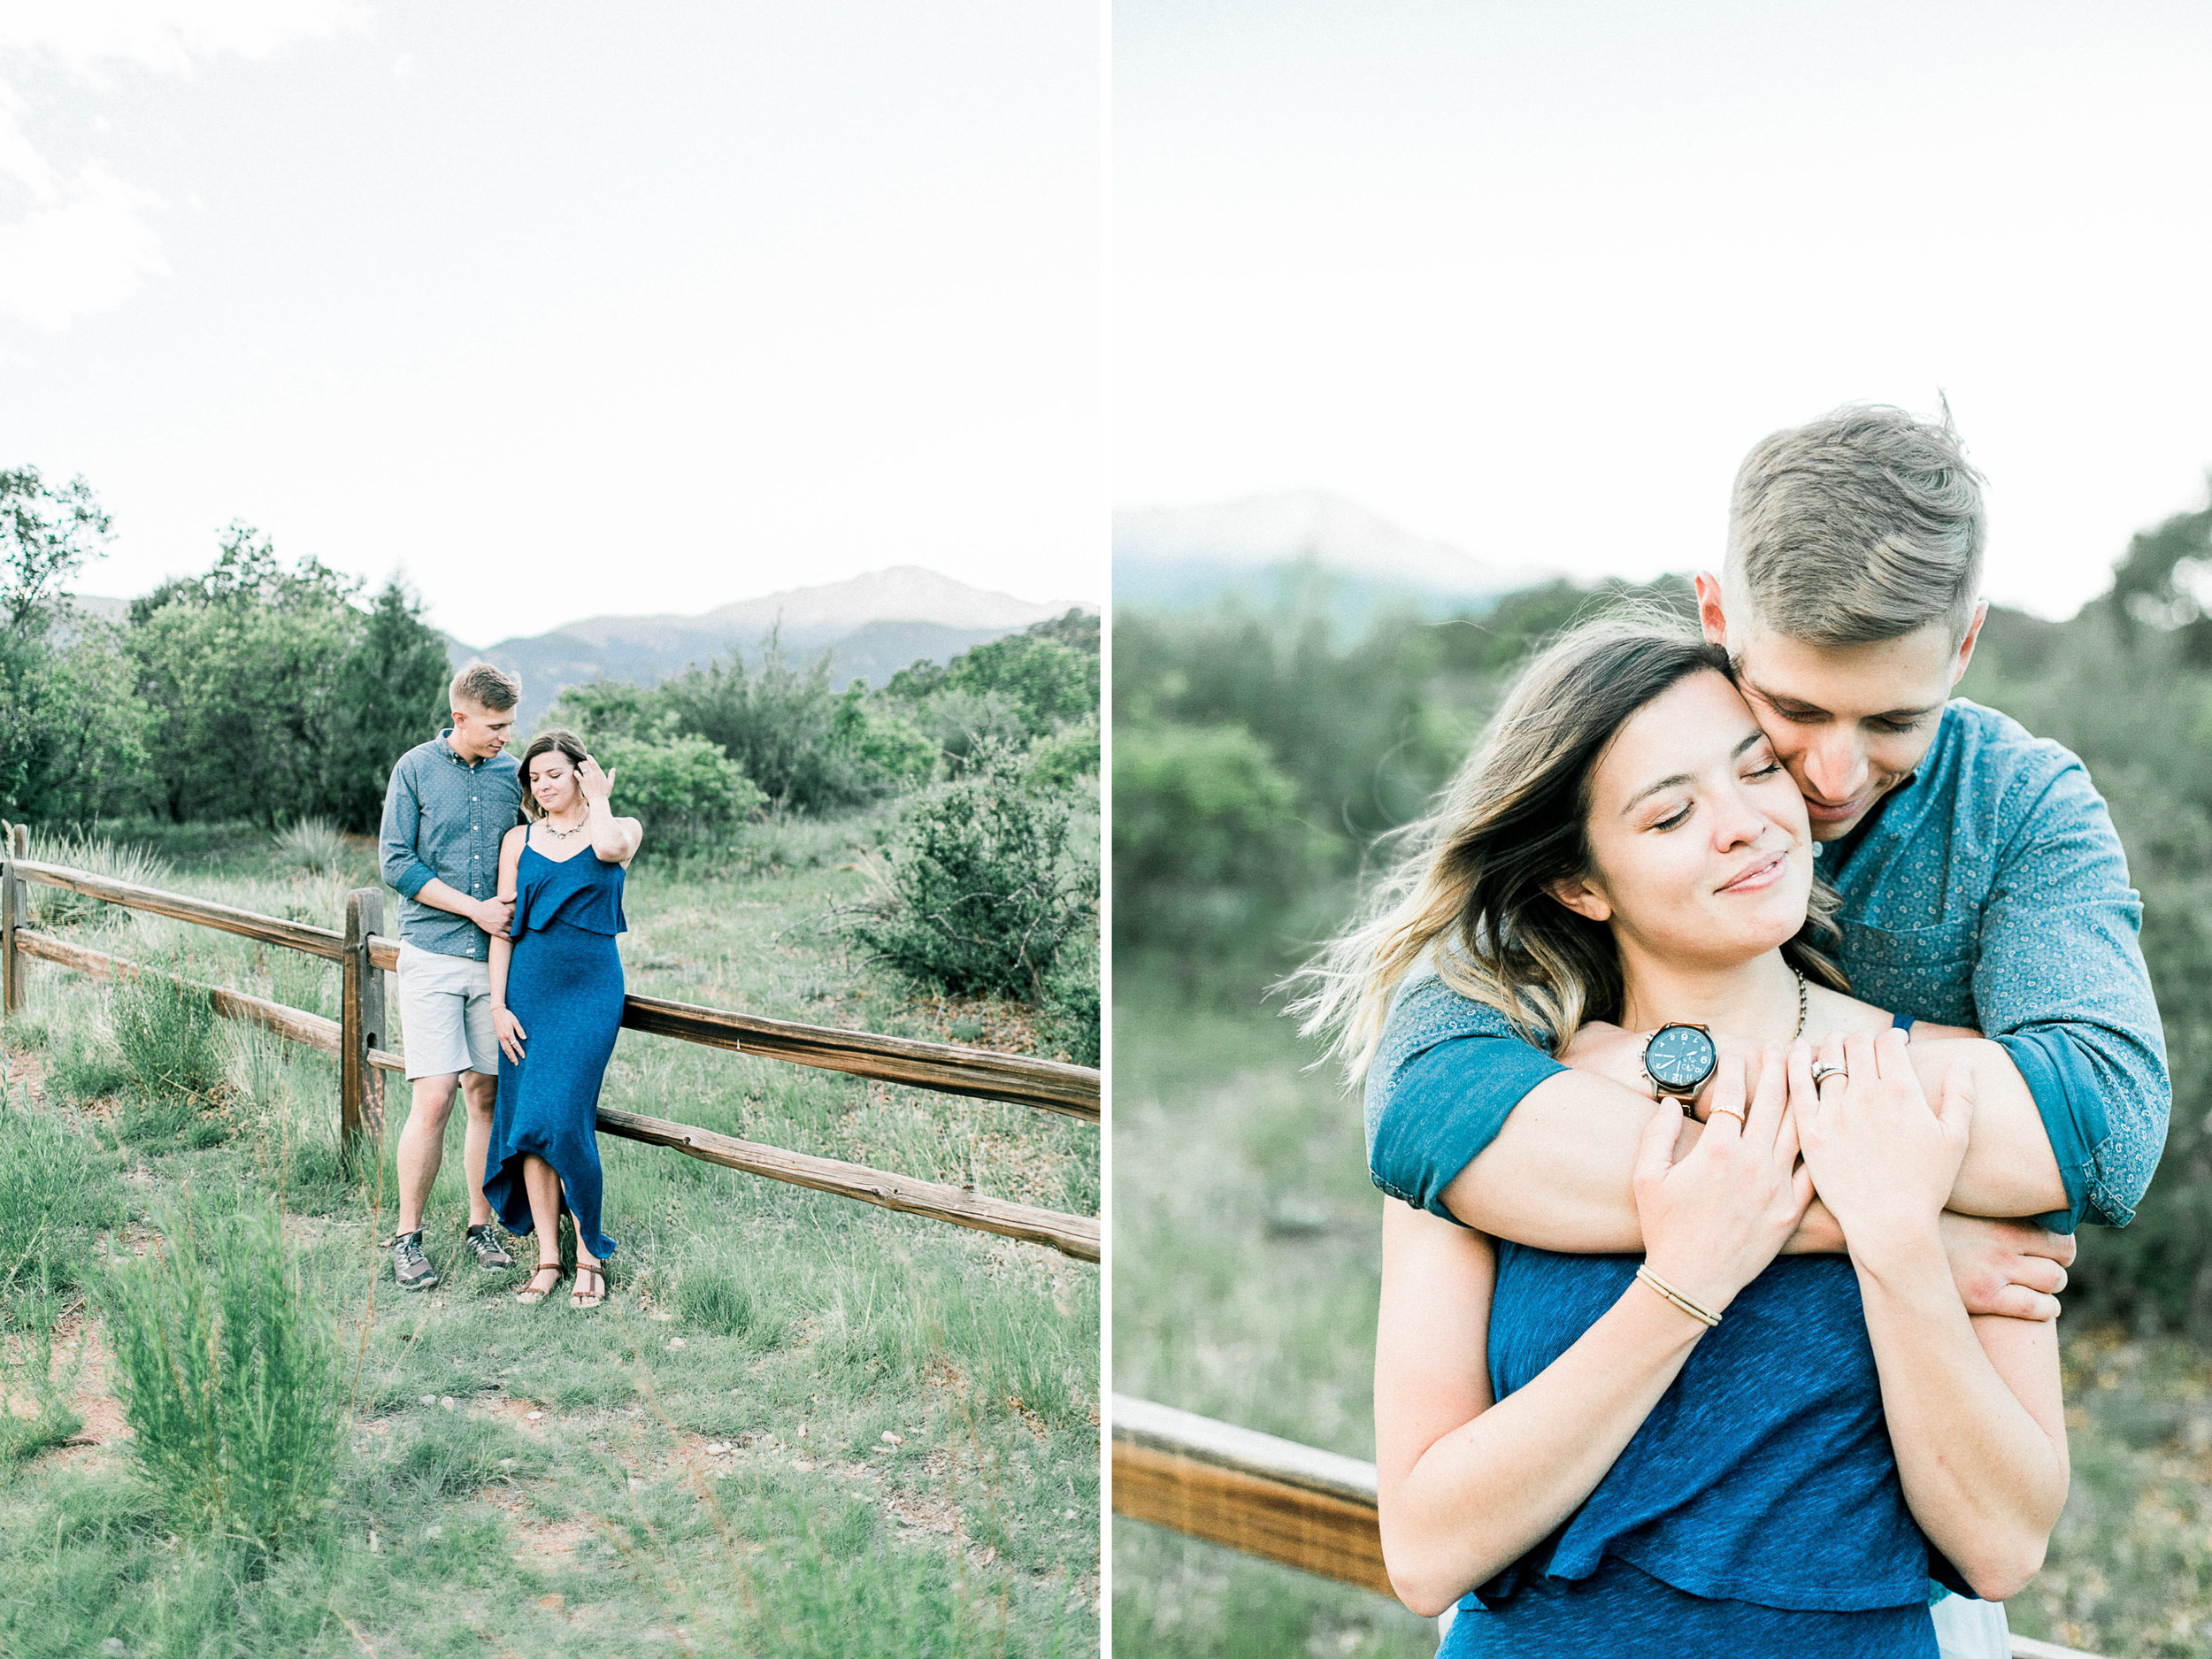 Colorado Springs Engagement Wedding Adventure Photographer - Erin and Jim 18.jpg